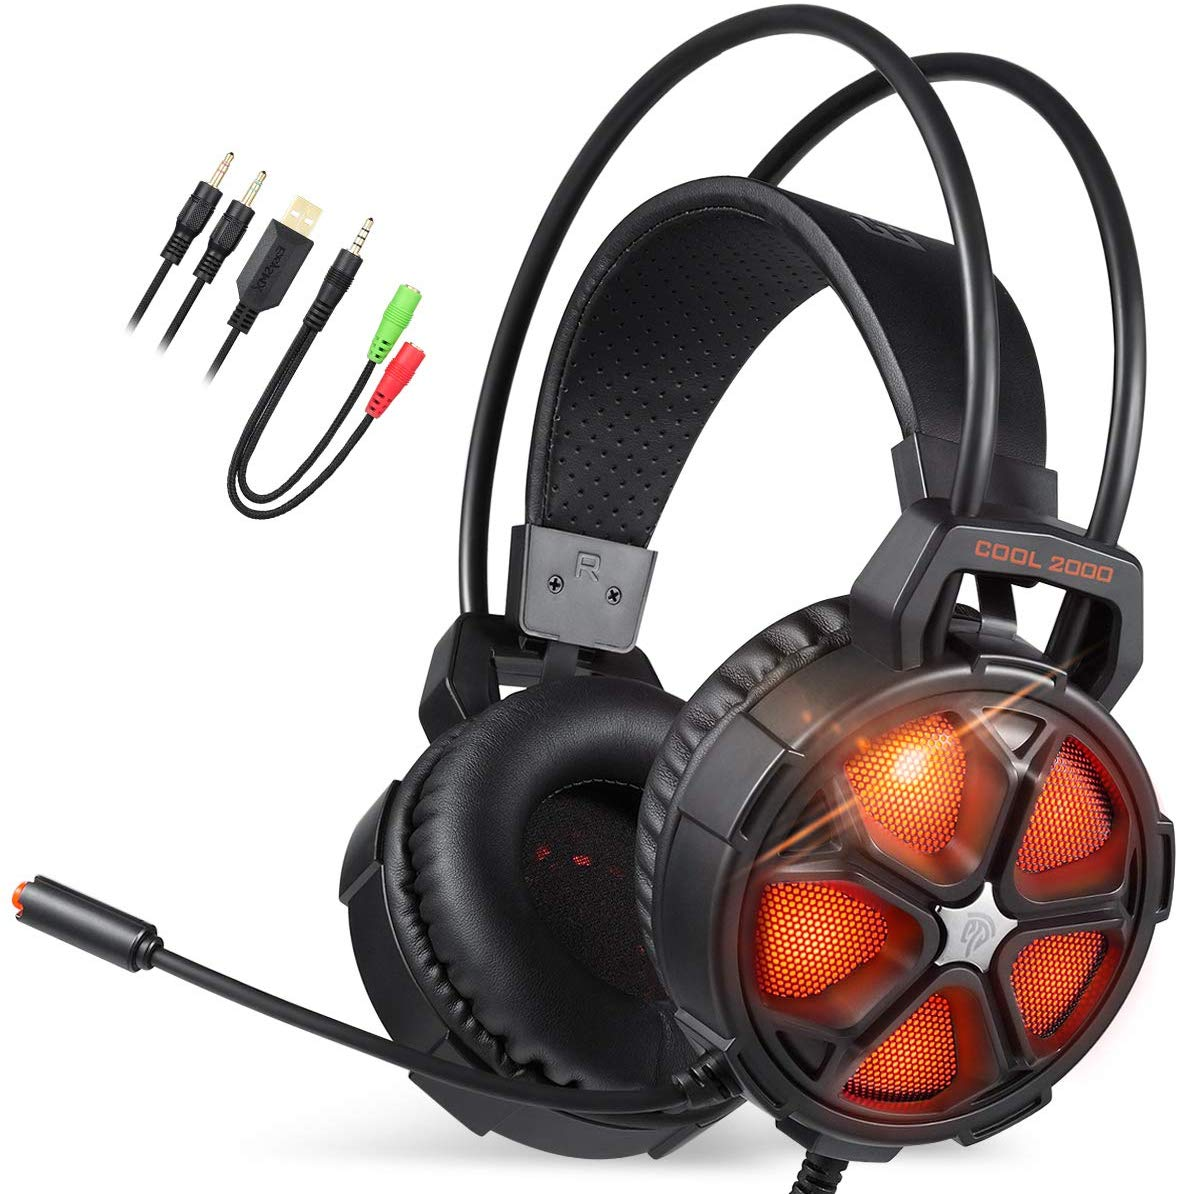 Easy SMX Gaming Headset amazon